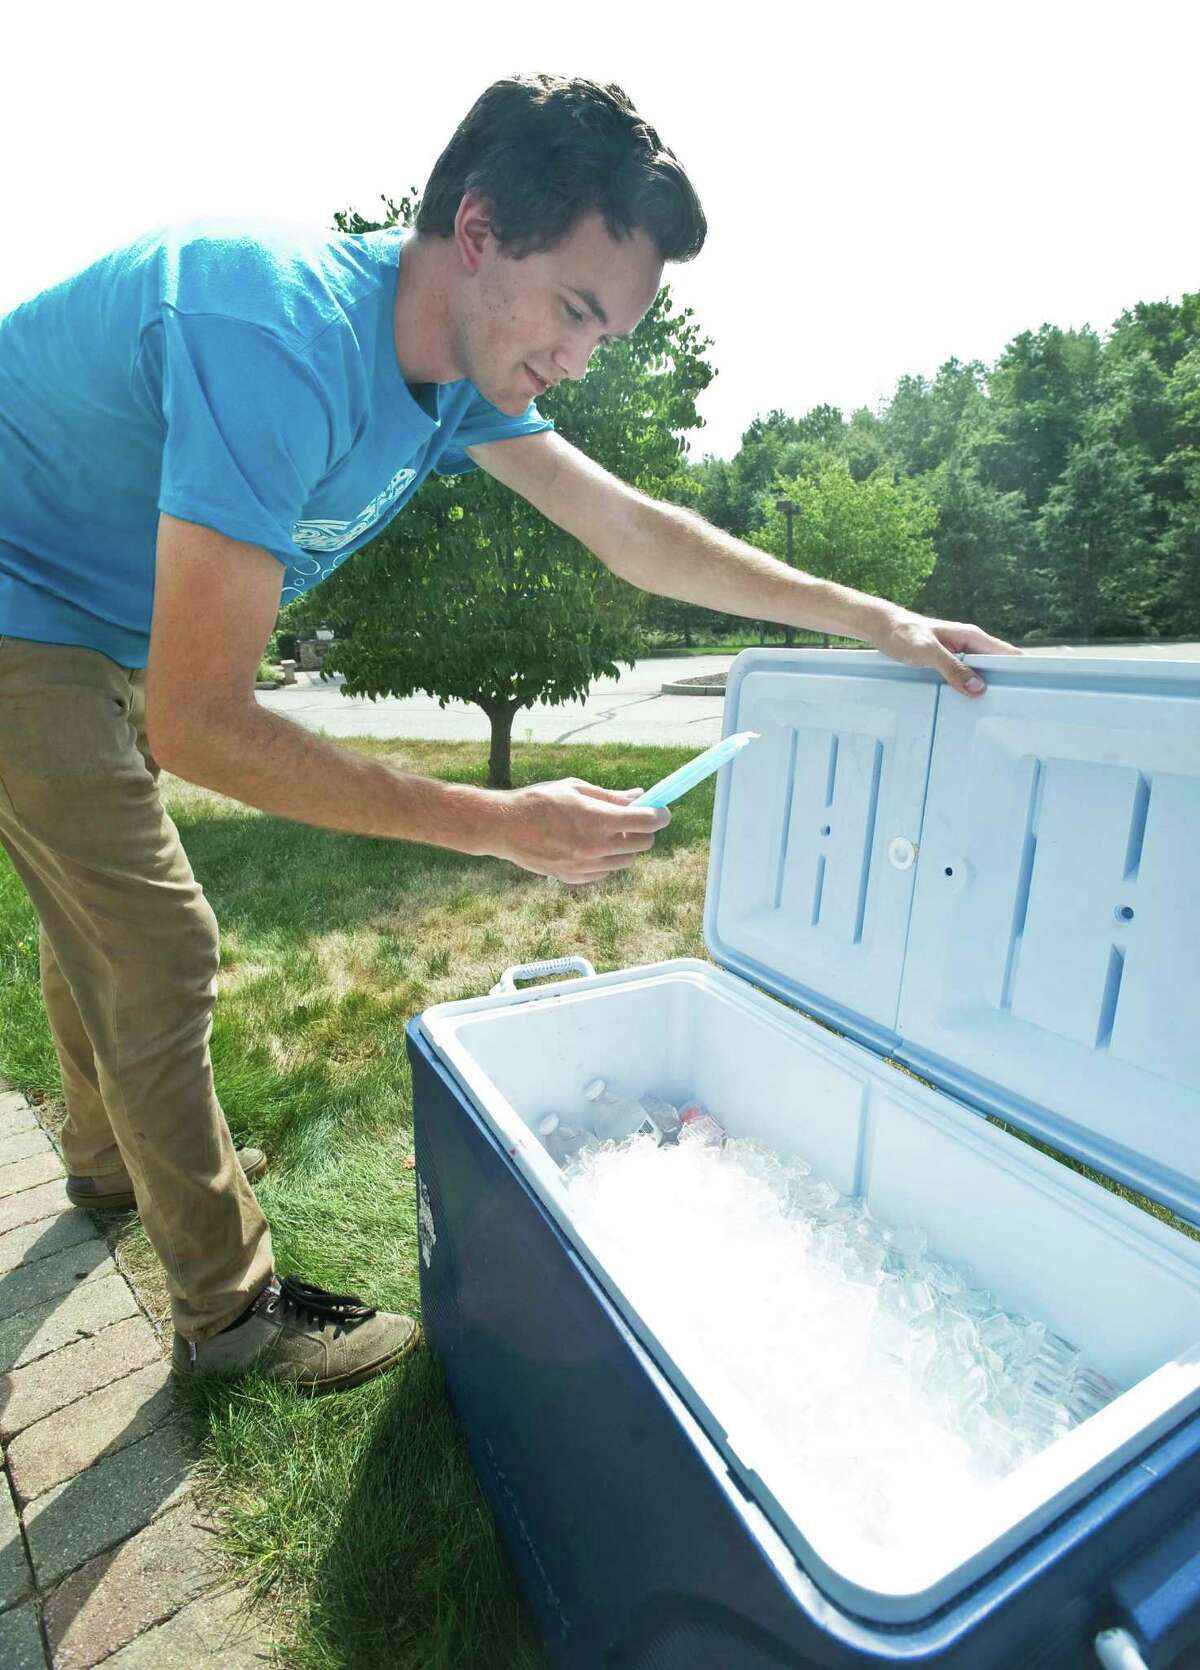 Tim Holt, Associate Youth Pastor at Walnut Hill Community Church in Bethel, put out coolers with waters and popsicles at two Pokemon Go stations on the church property for people playing the new hit game. Thursday, July 14, 2016